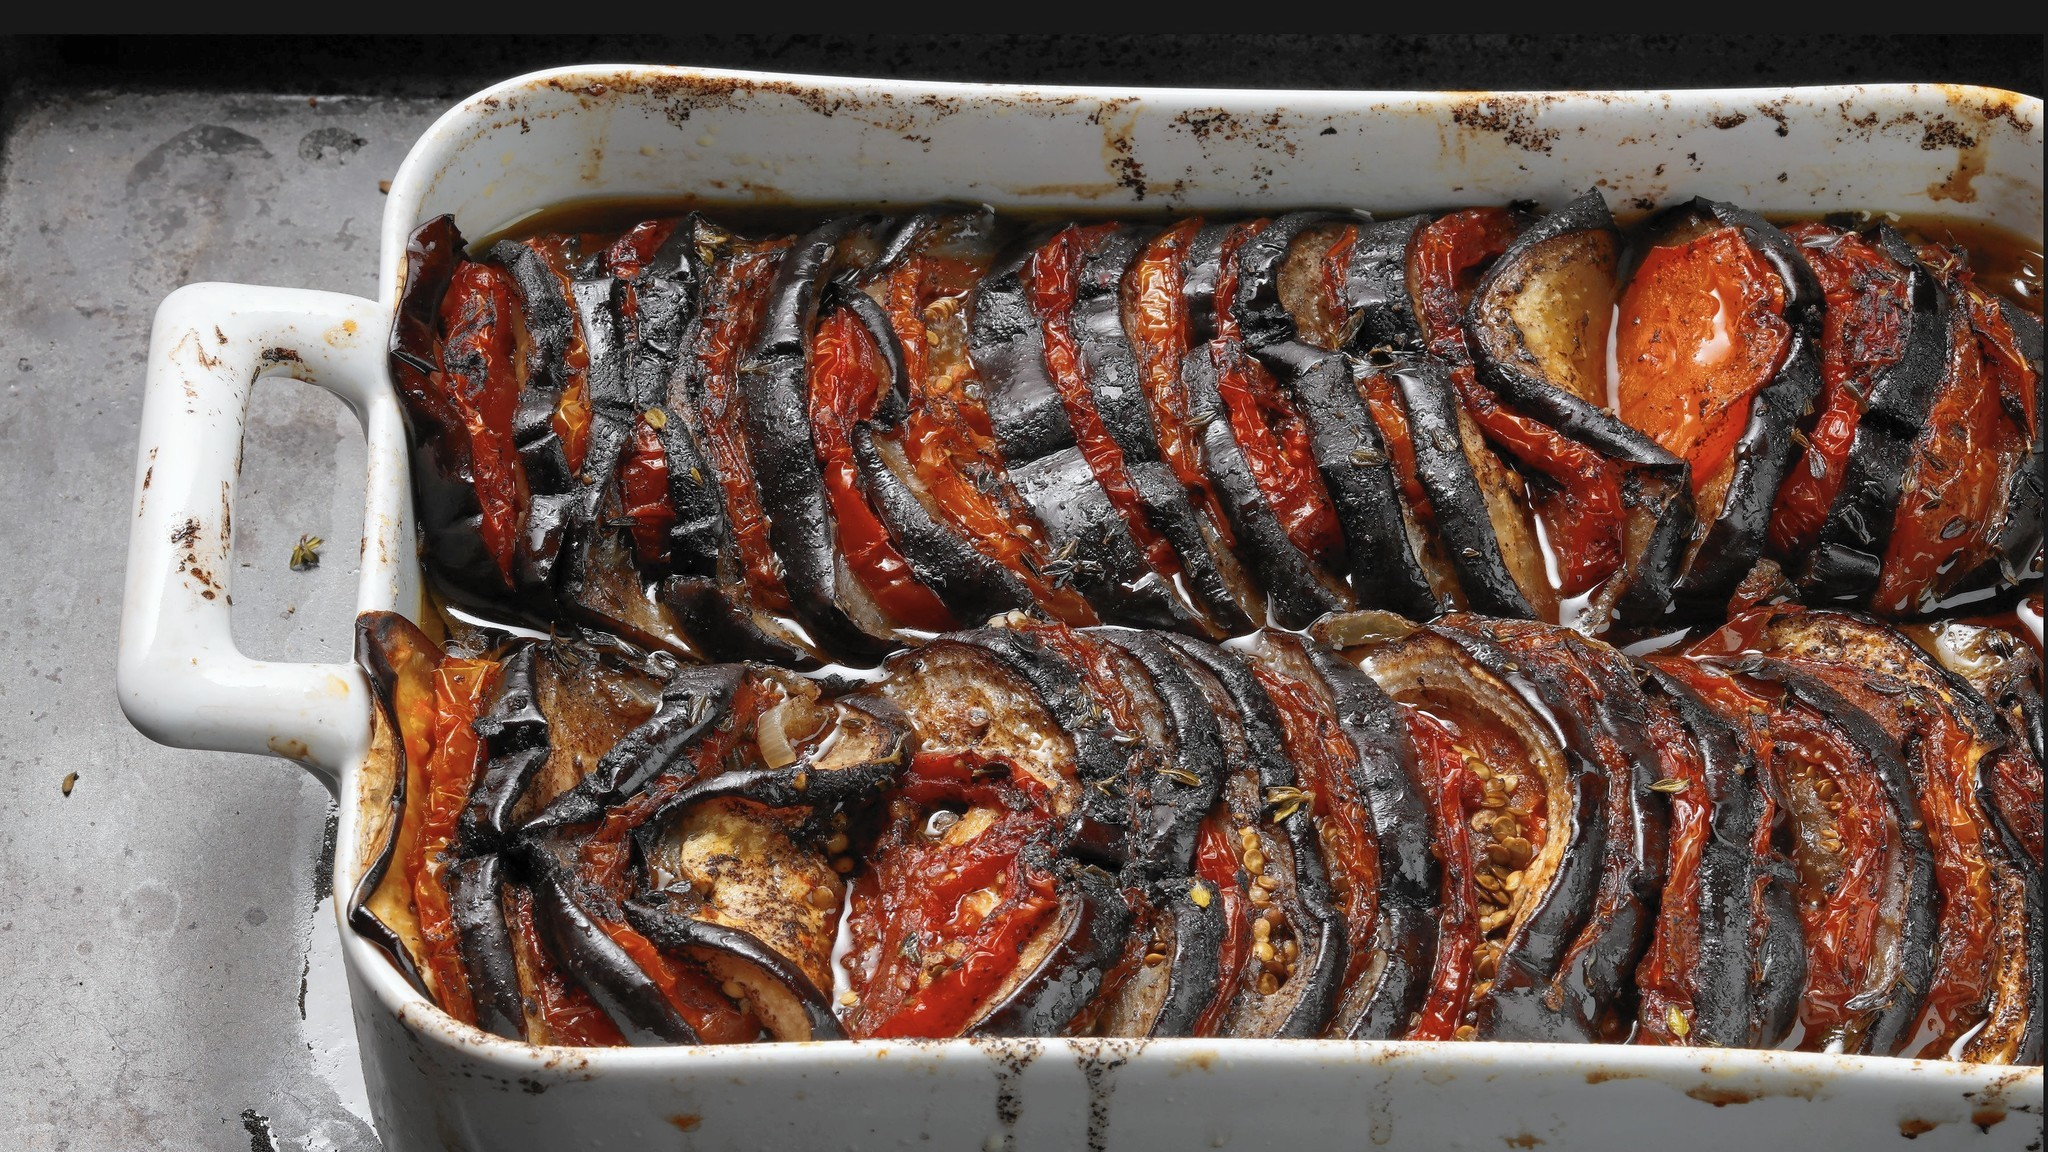 Eggplant and tomatoes pair in easy make-ahead summer casserole